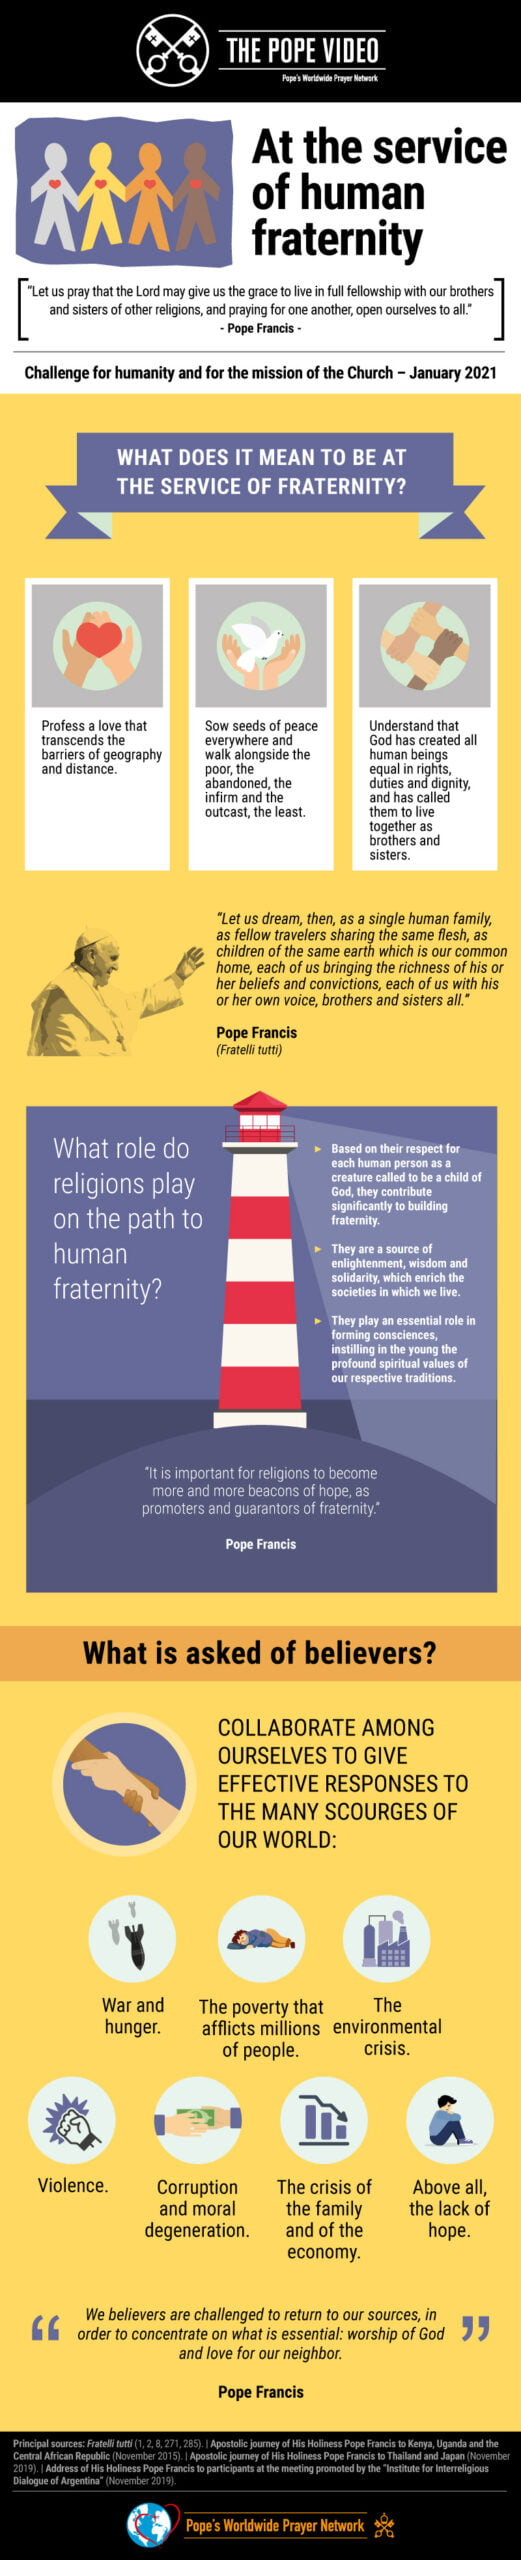 Infographic-TPV-1-2021-EN-The-Pope-Video-At-the-service-of-human-fraternity (1)